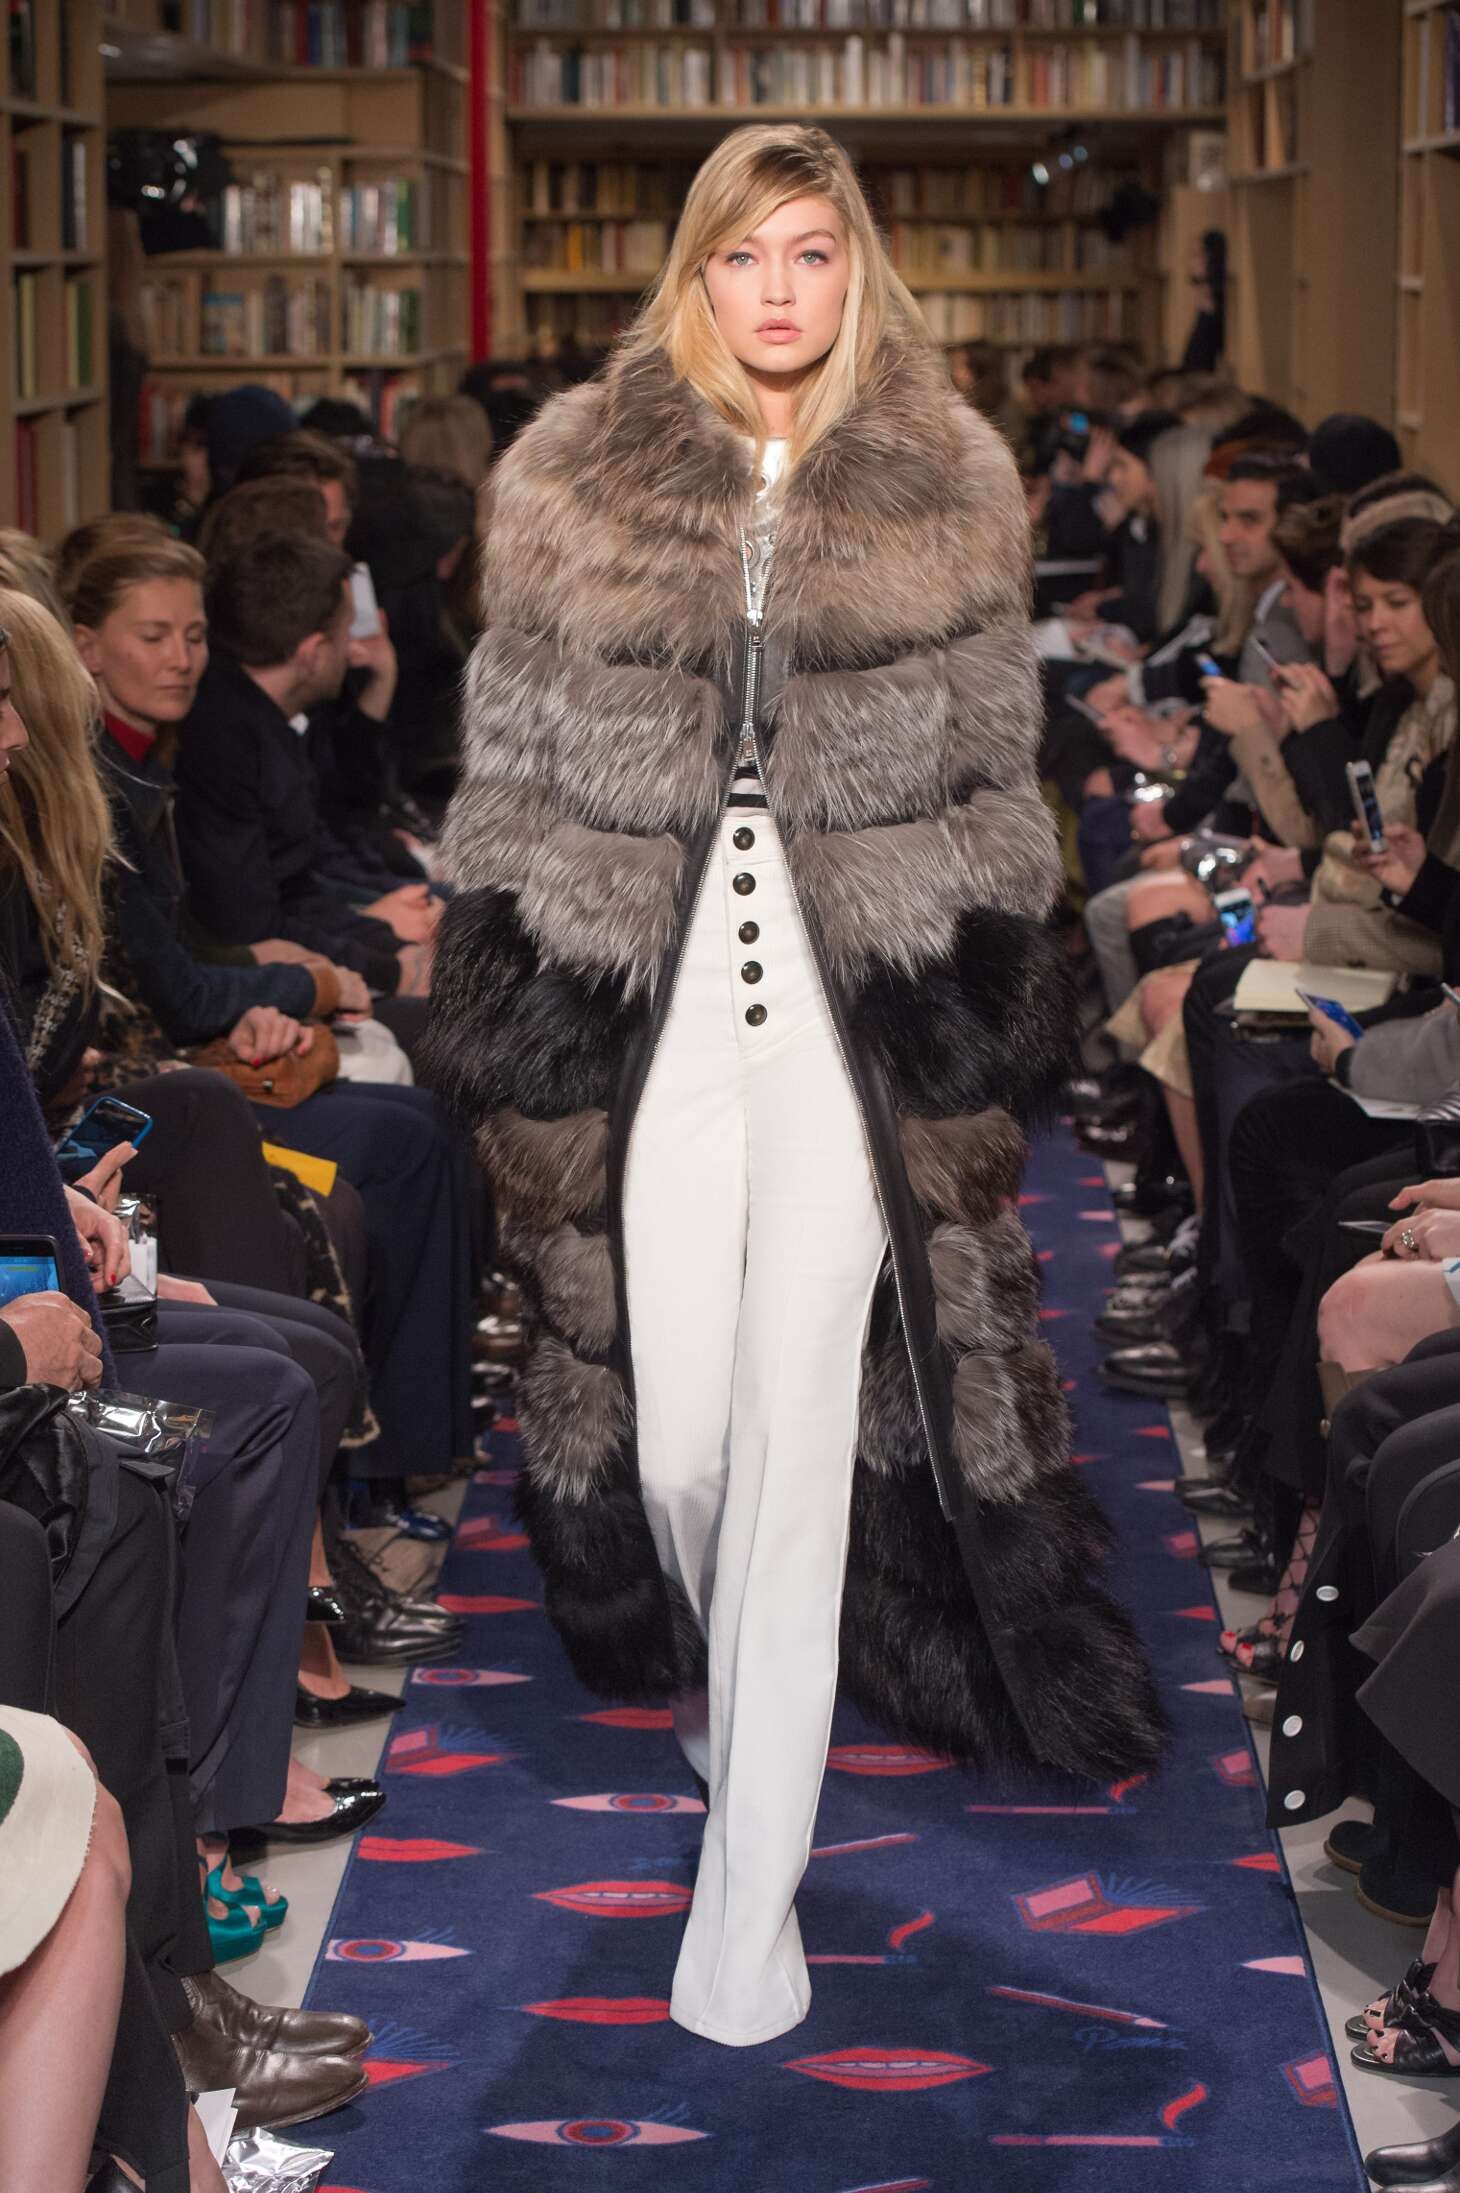 Runway Sonia Rykiel Fall Winter 2015 16 Women's Collection Paris Fashion Week